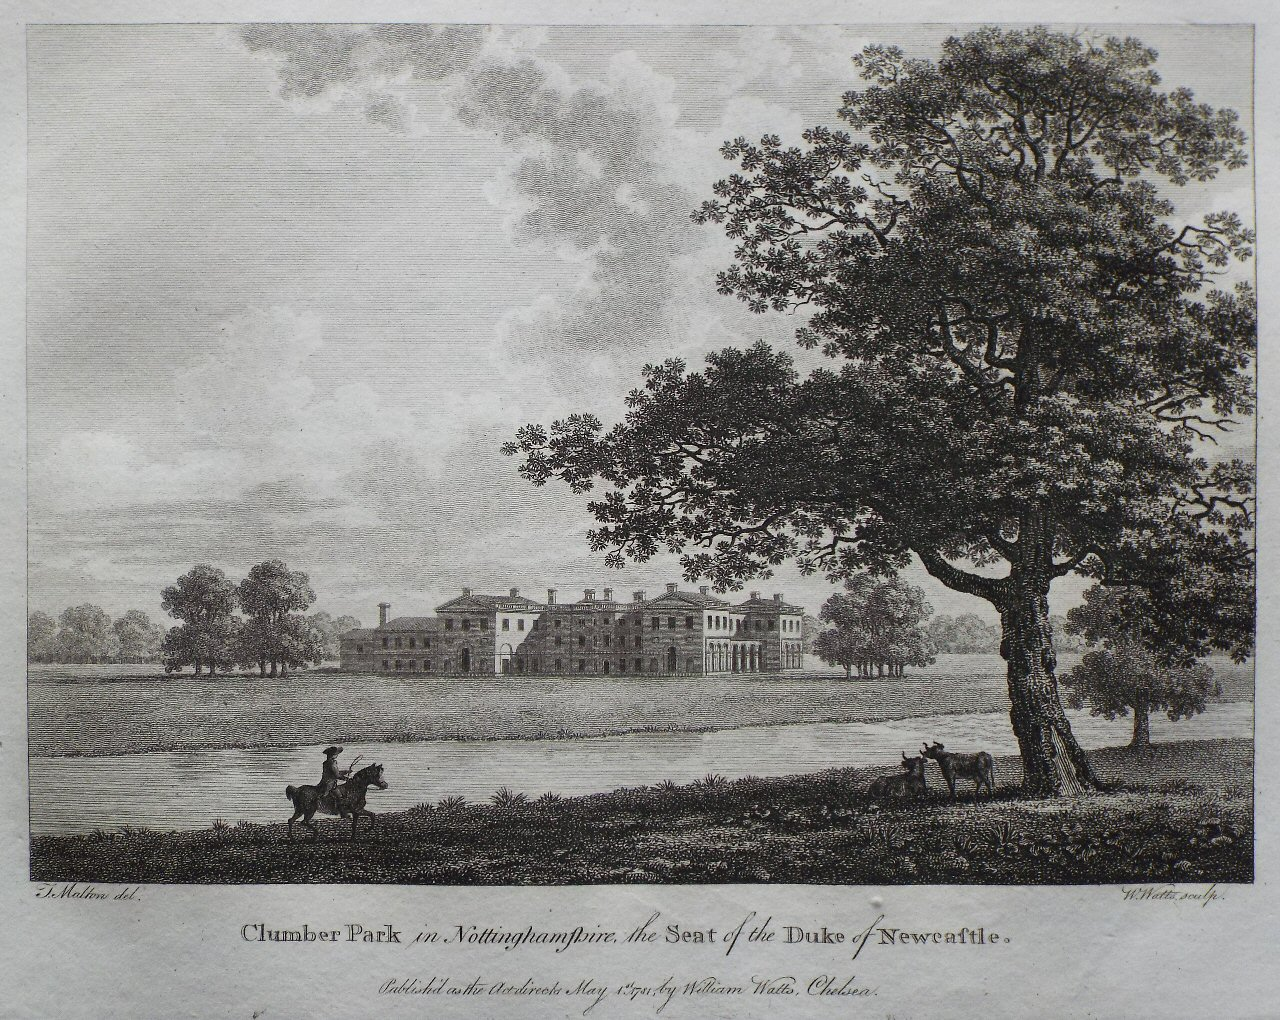 Print - Clumber Park in Nottinghamshire, the Seat of the Duke of Newcastle. - Watts